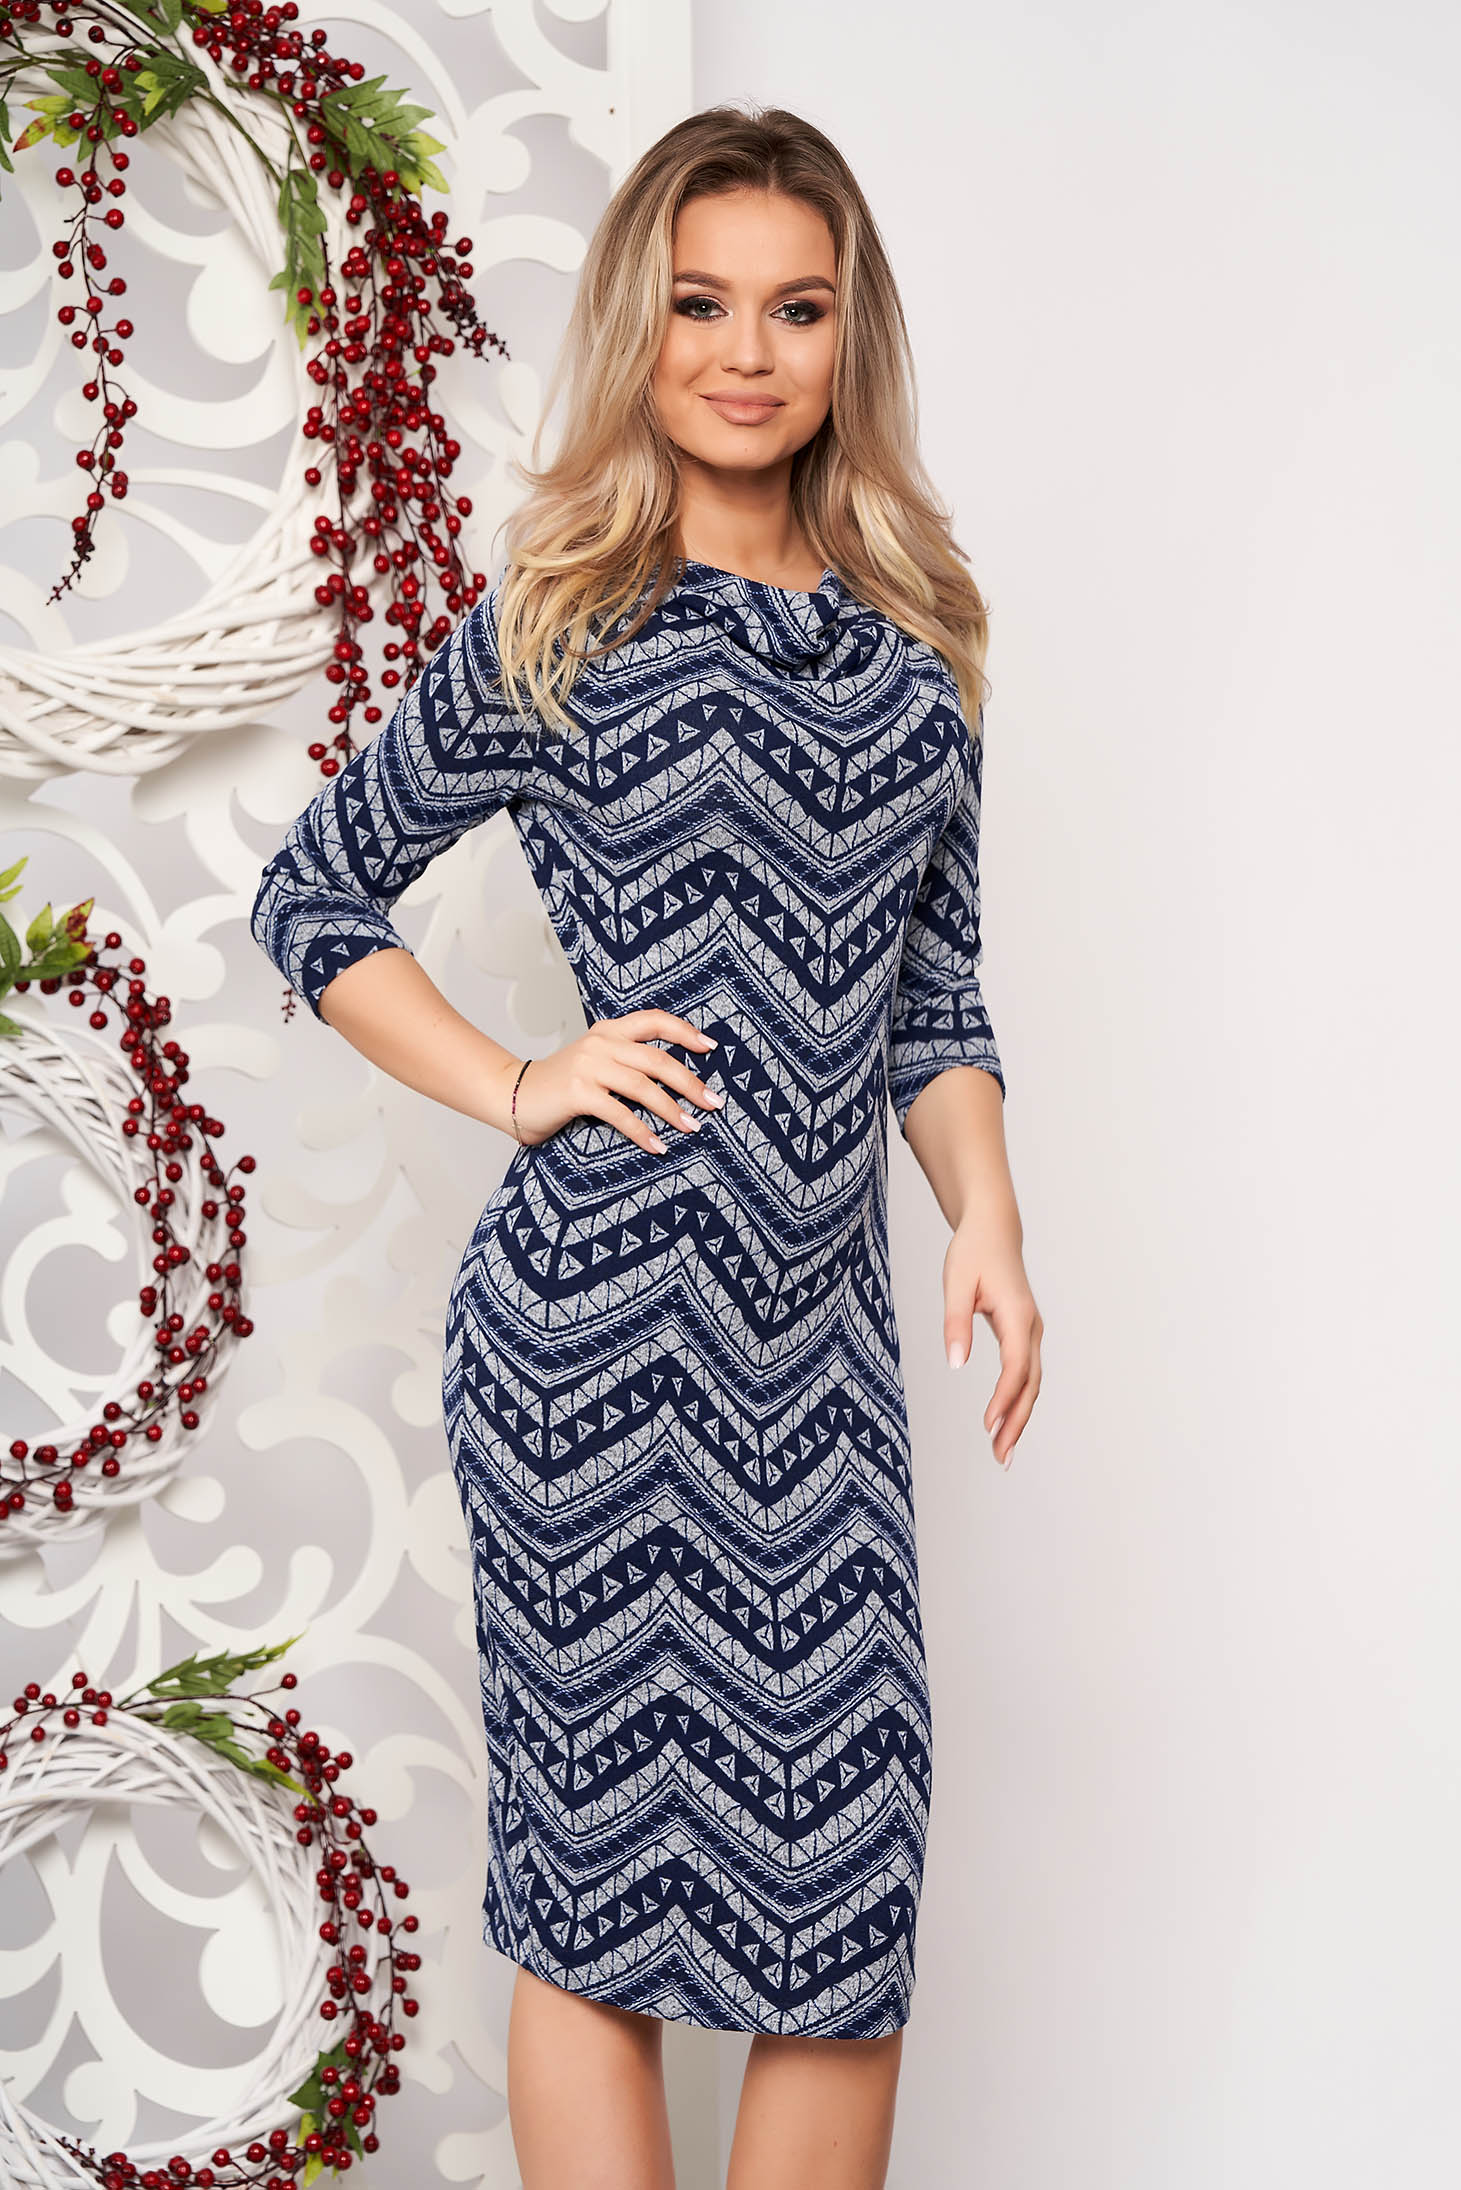 StarShinerS darkblue daily dress knitted fabric with tented cut with 3/4 sleeves